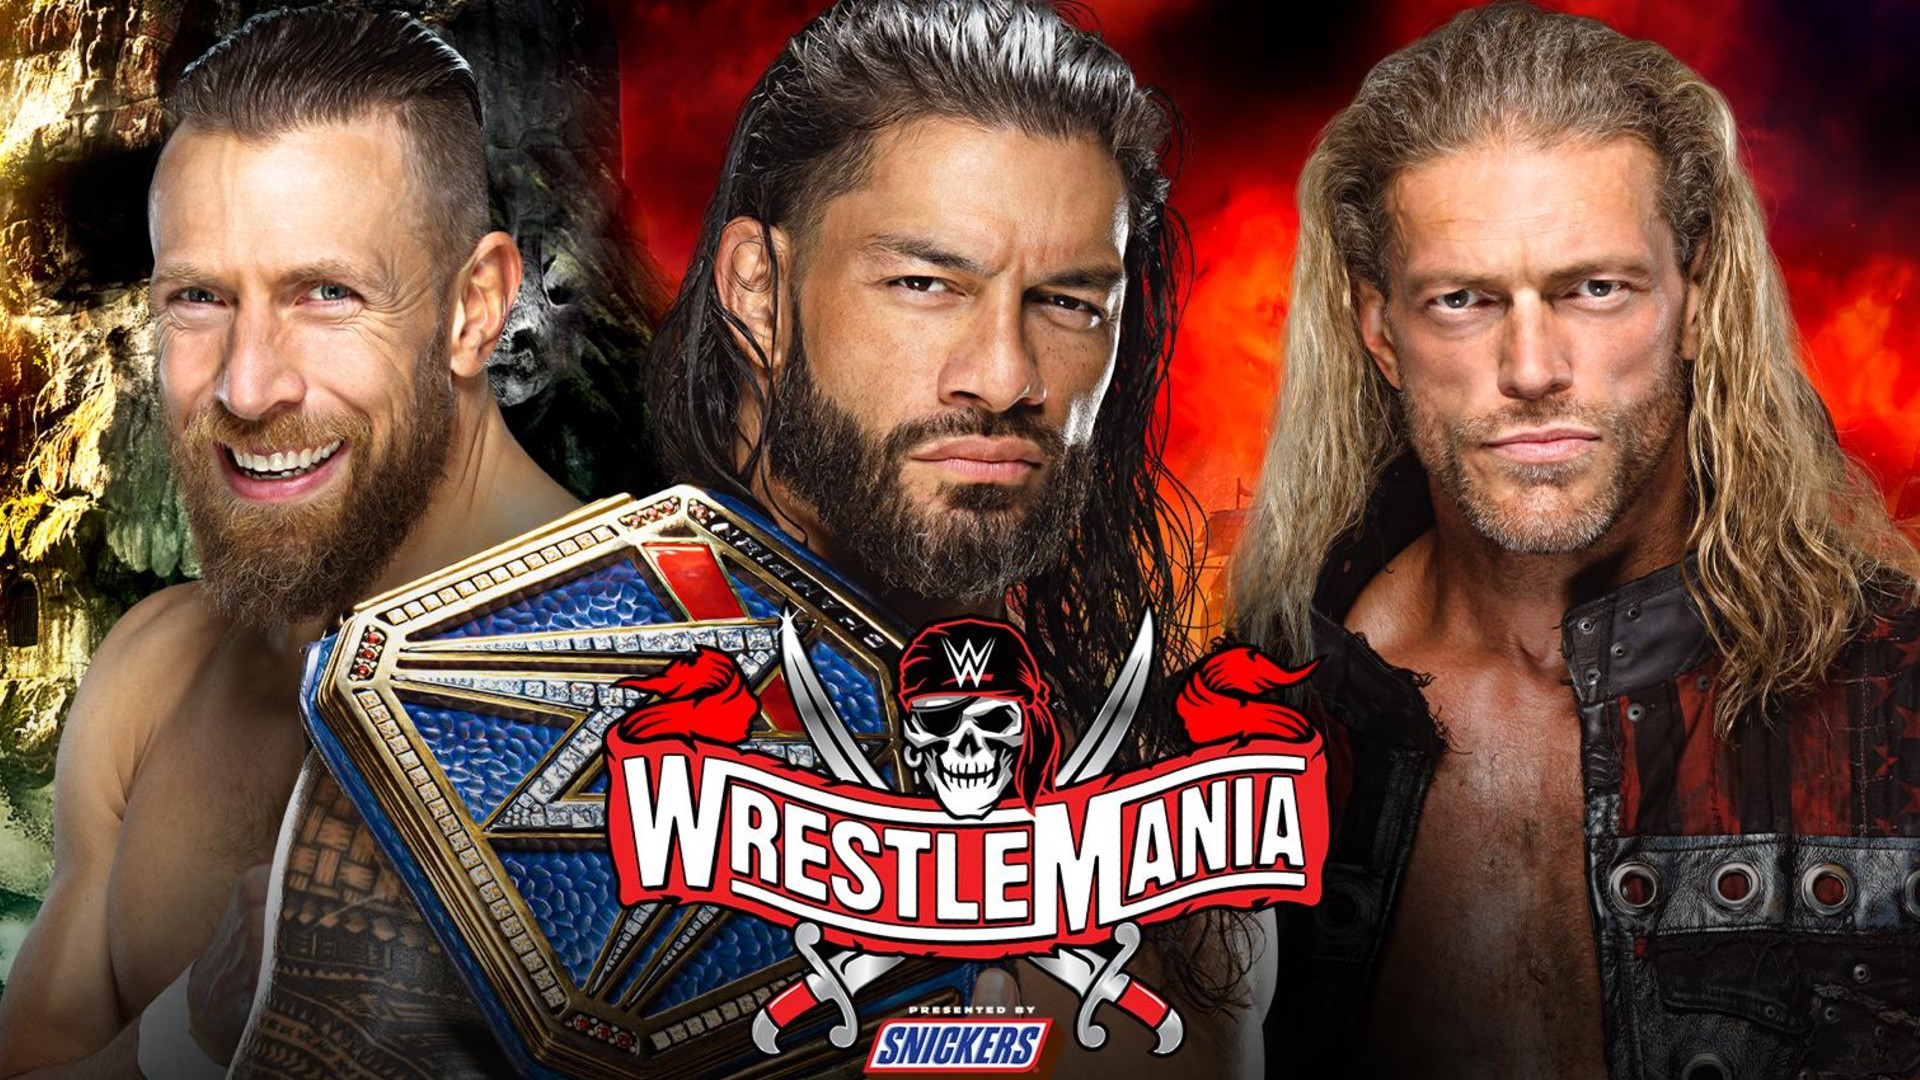 WrestleMania 37 date, start time, matches, PPV cost, location & more on WWE's 2021 event